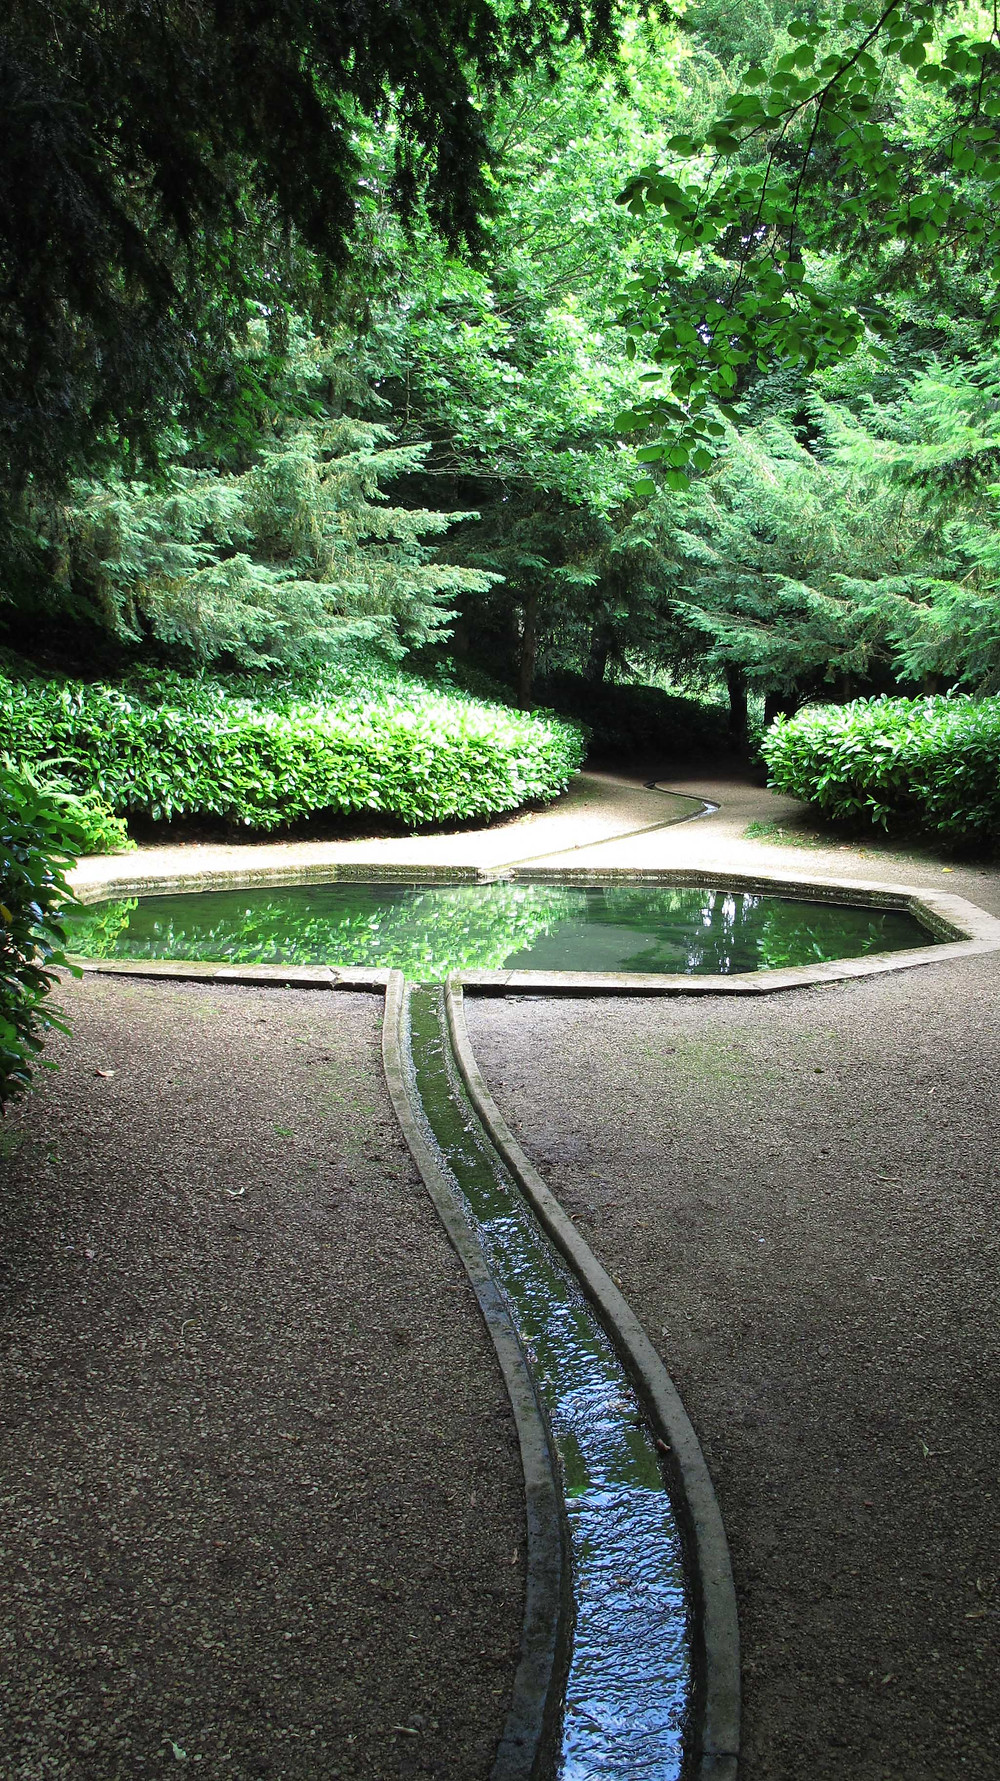 swimming pool, rill,water feature, woodland path,